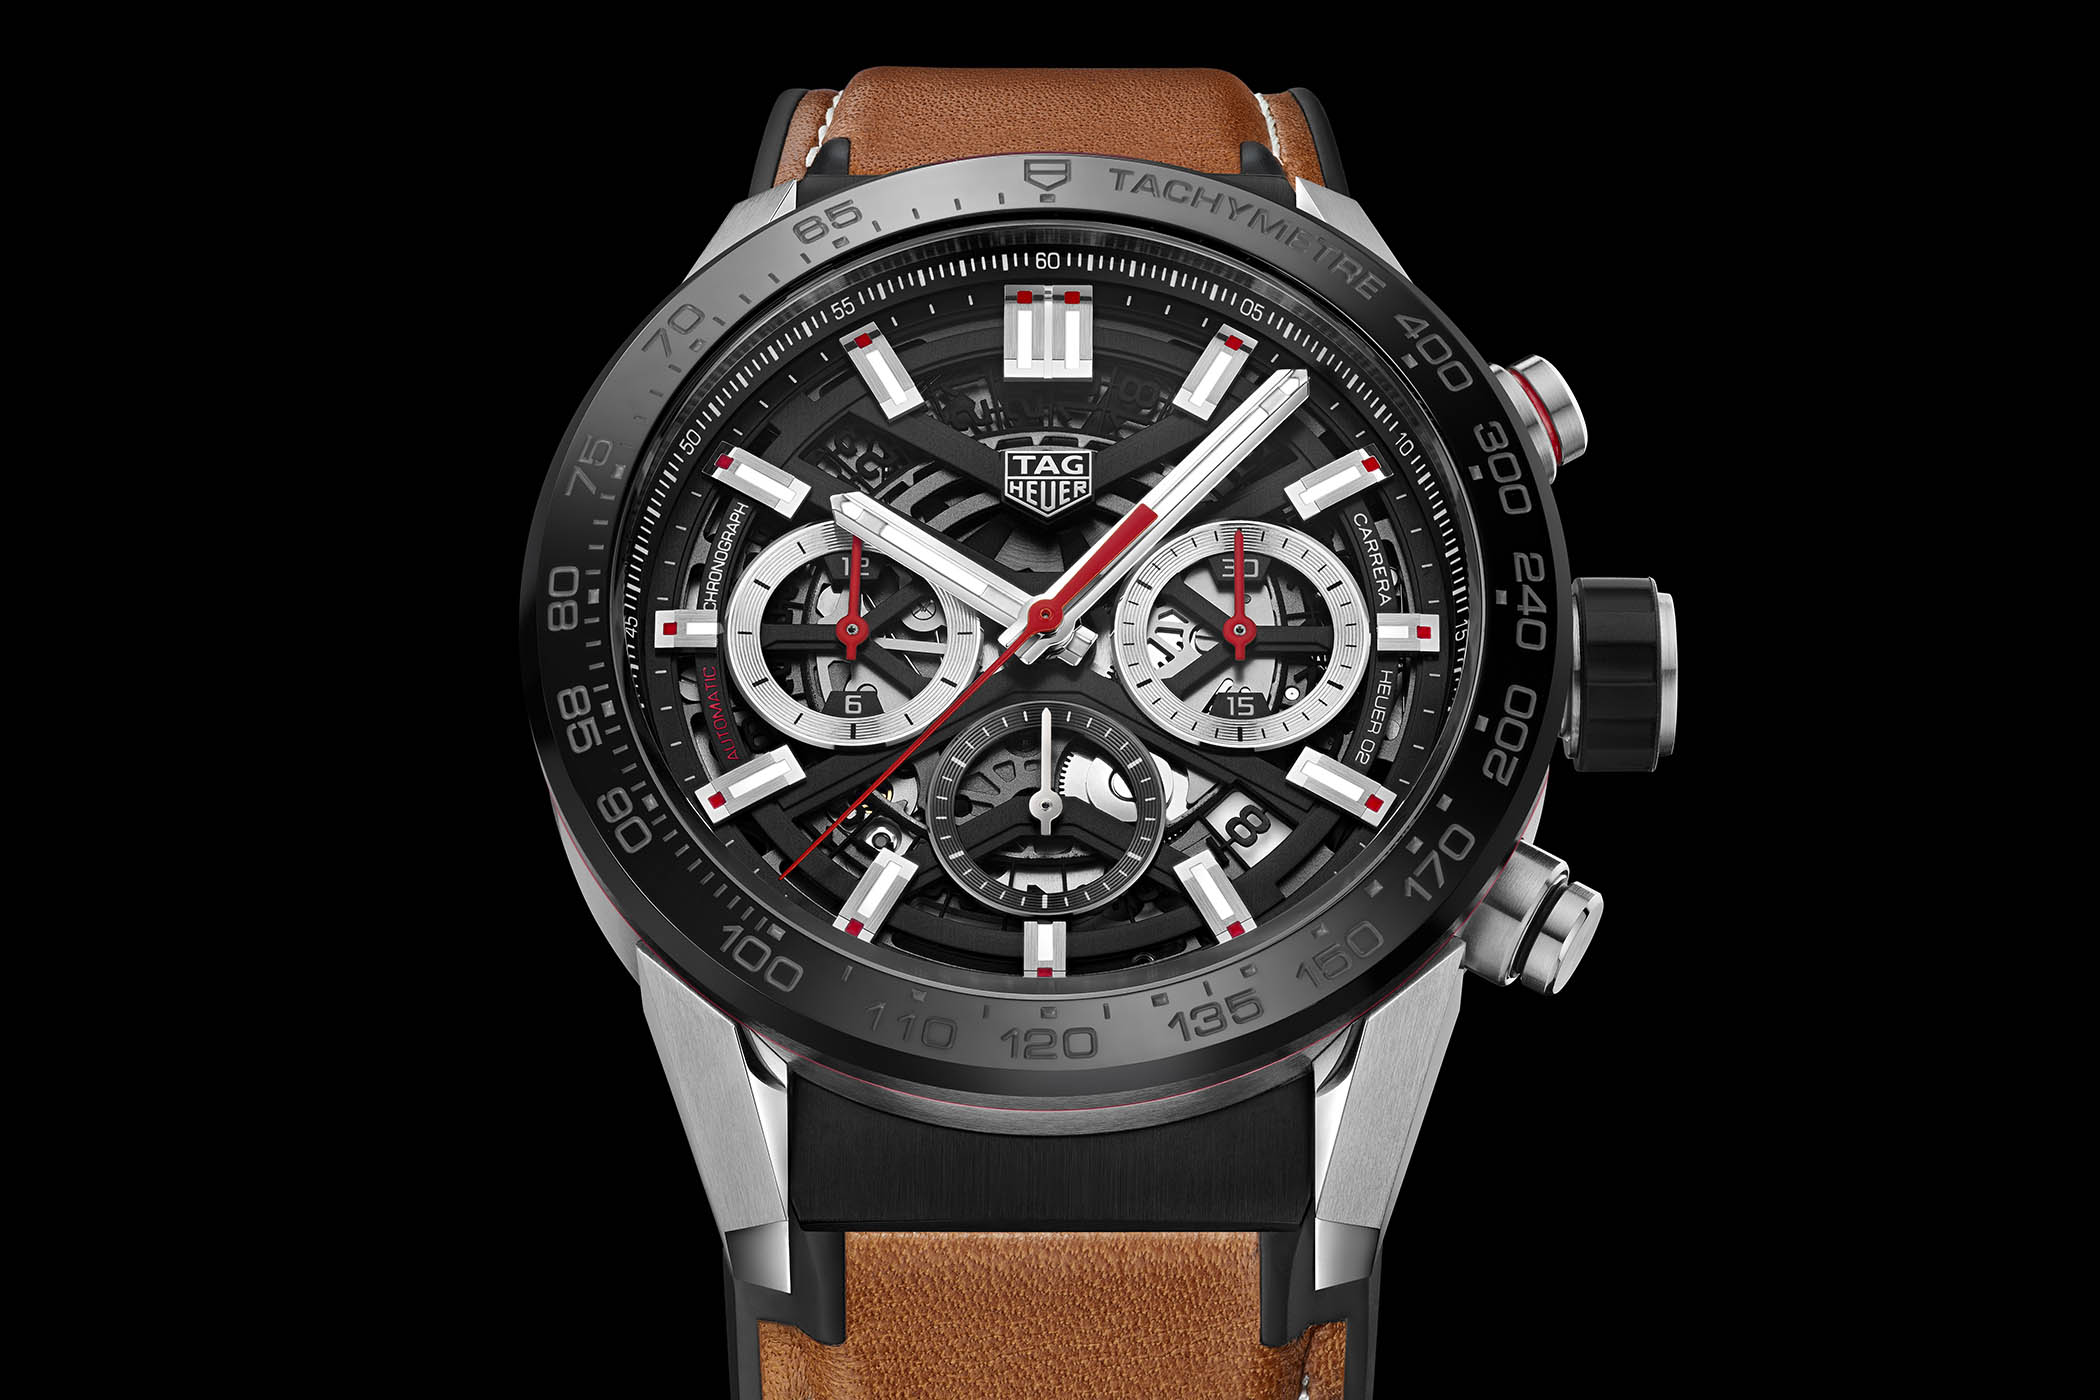 dfw heuer carerra tag watches tourbillon carrera product